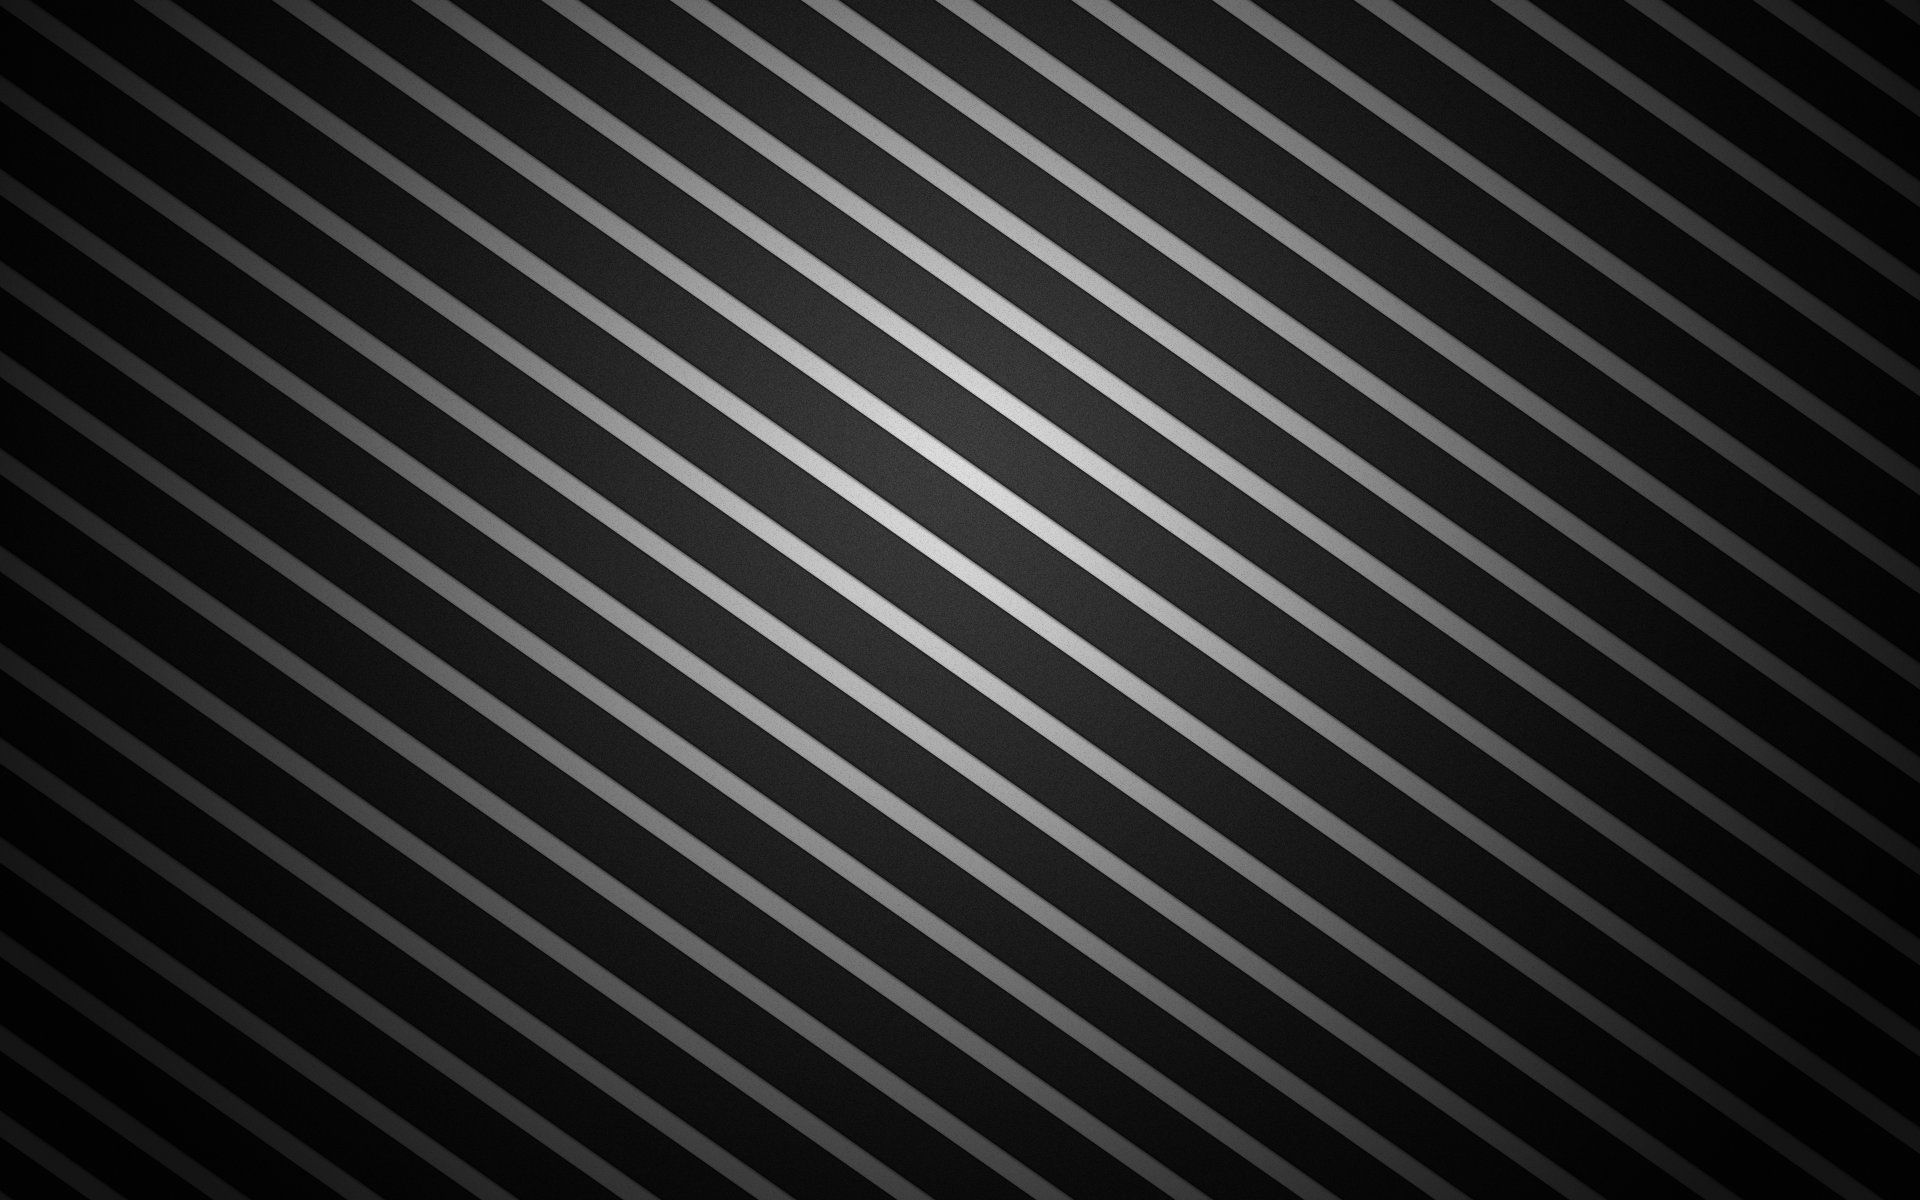 Dark Wallpapers Android Group 1920—1200 Black Wallpapers Texture 34 Wallpapers